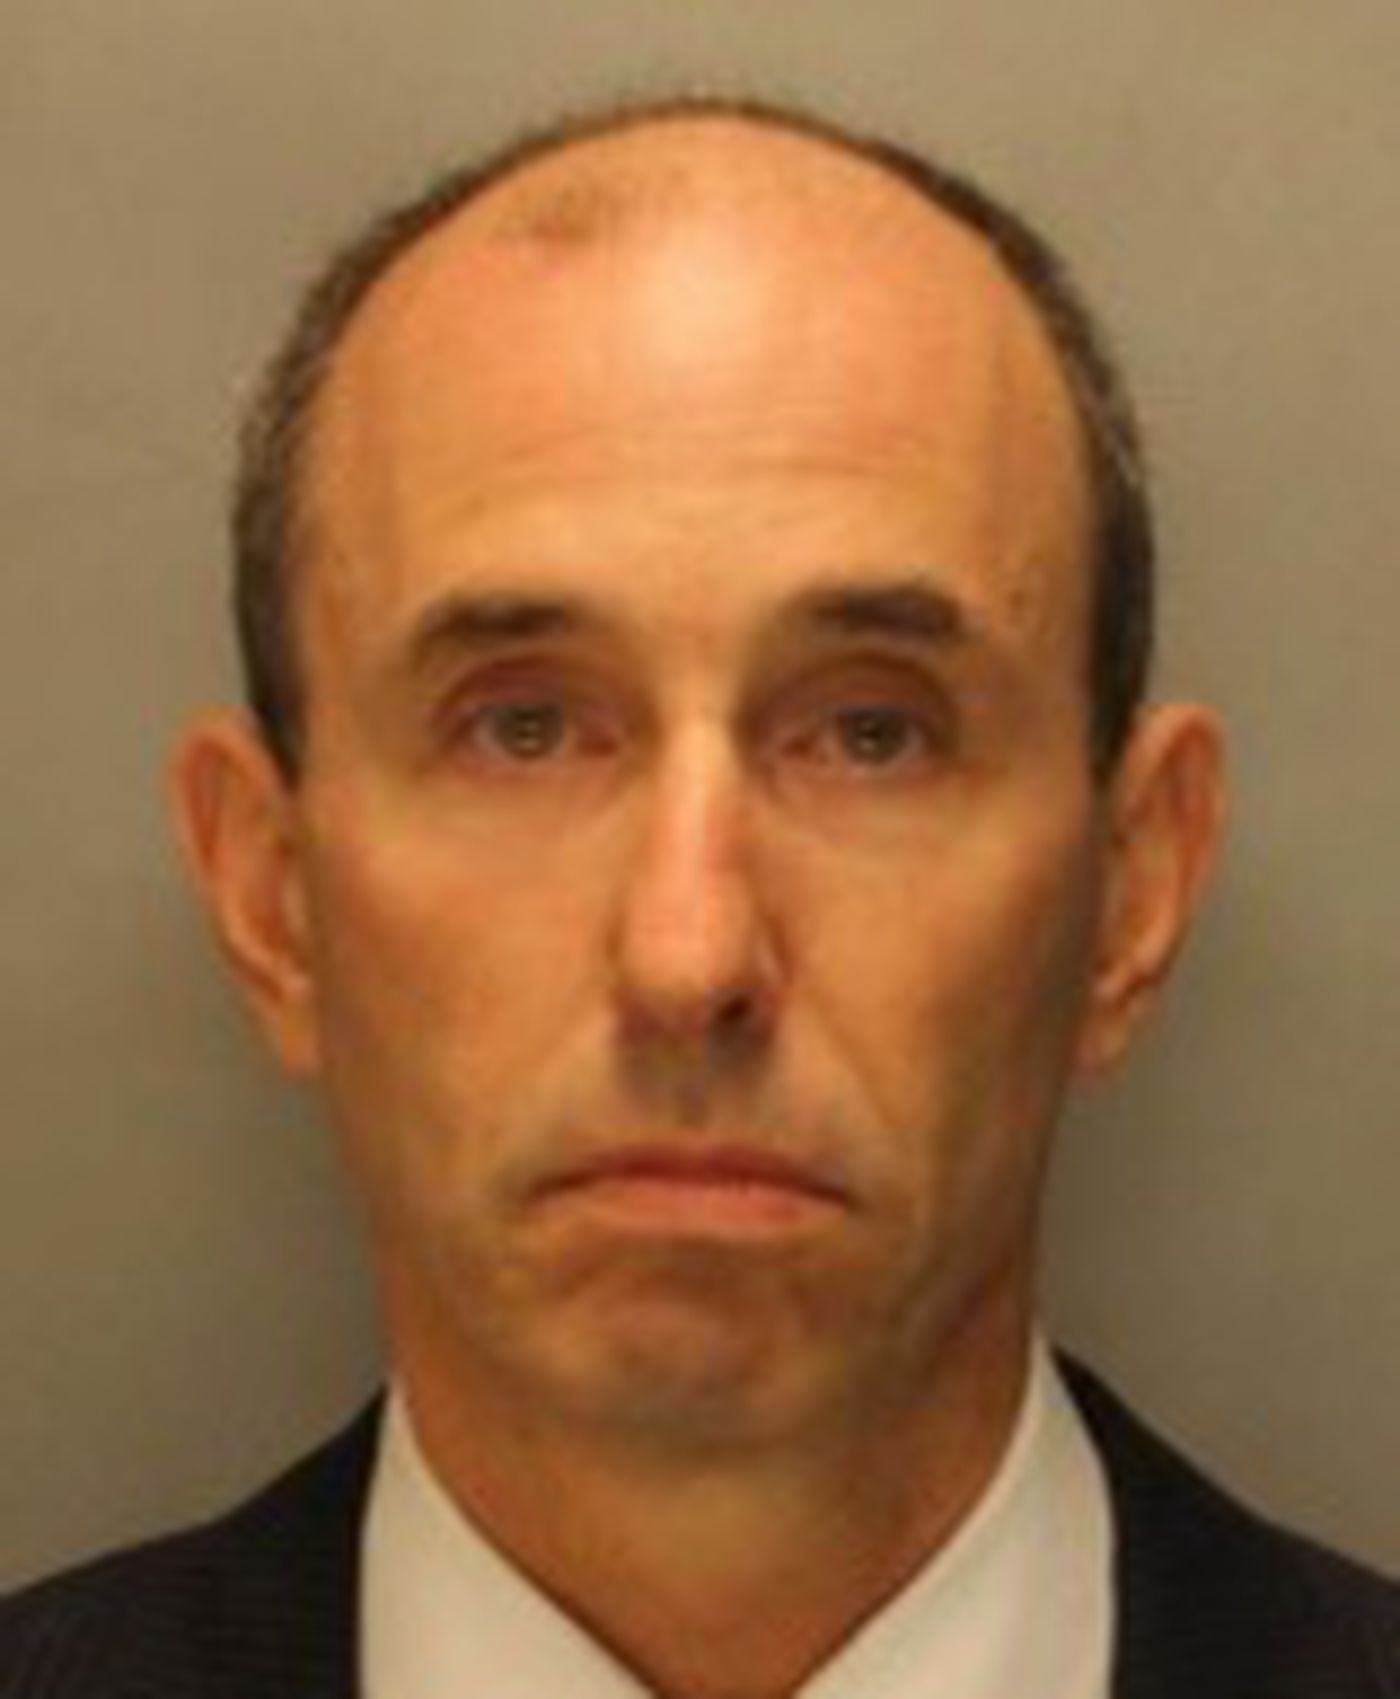 4 Montgomery County doctors charged with running 'pill mills